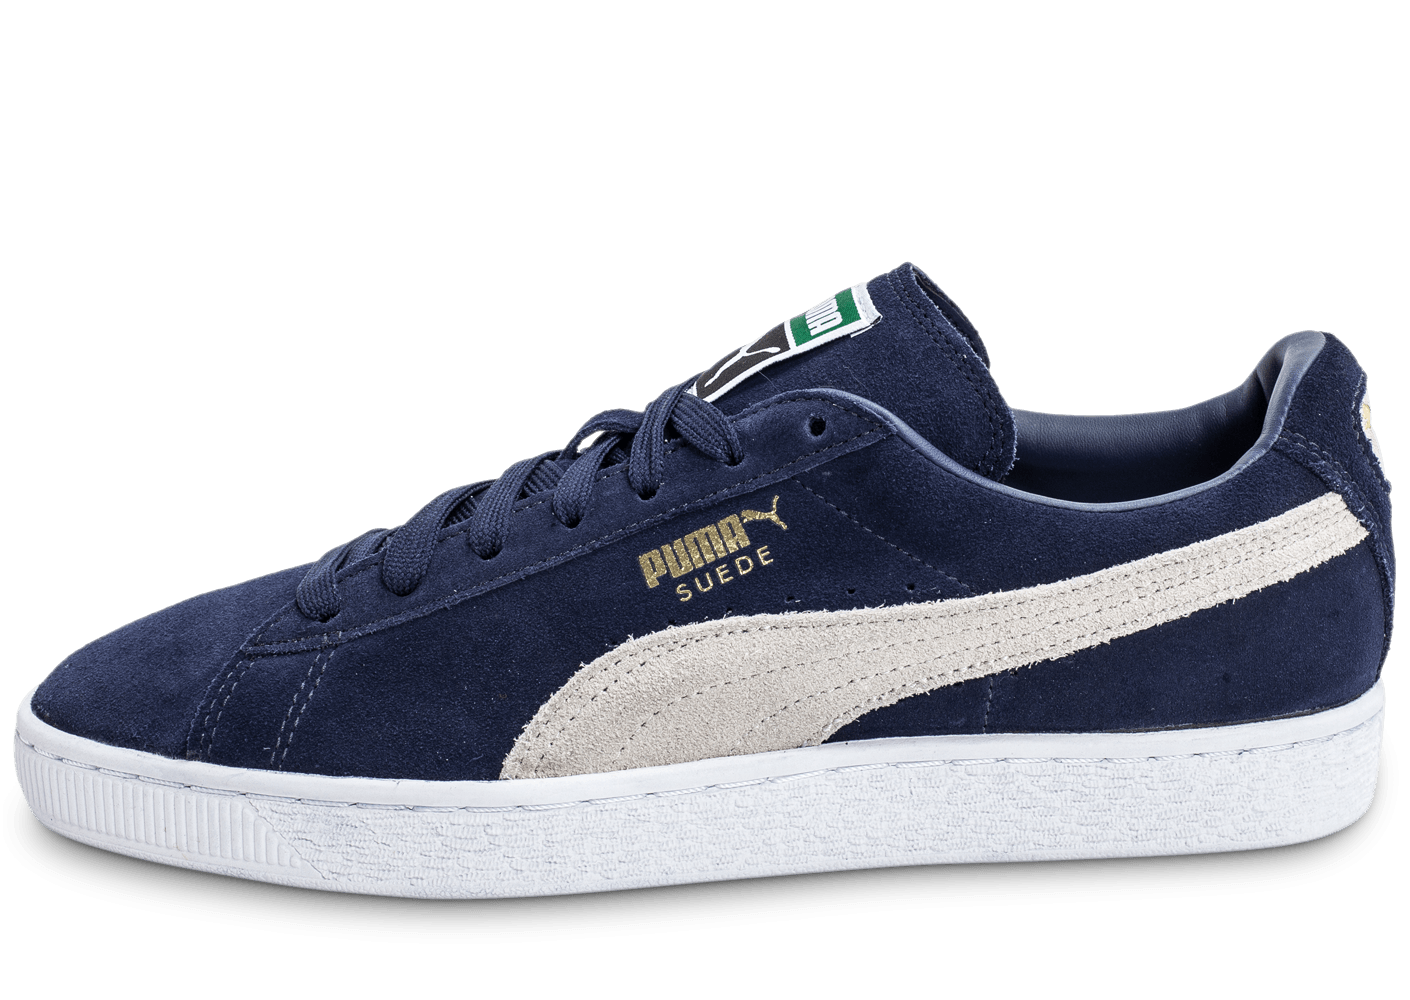 puma suede classic bleu marine chaussures homme chausport. Black Bedroom Furniture Sets. Home Design Ideas